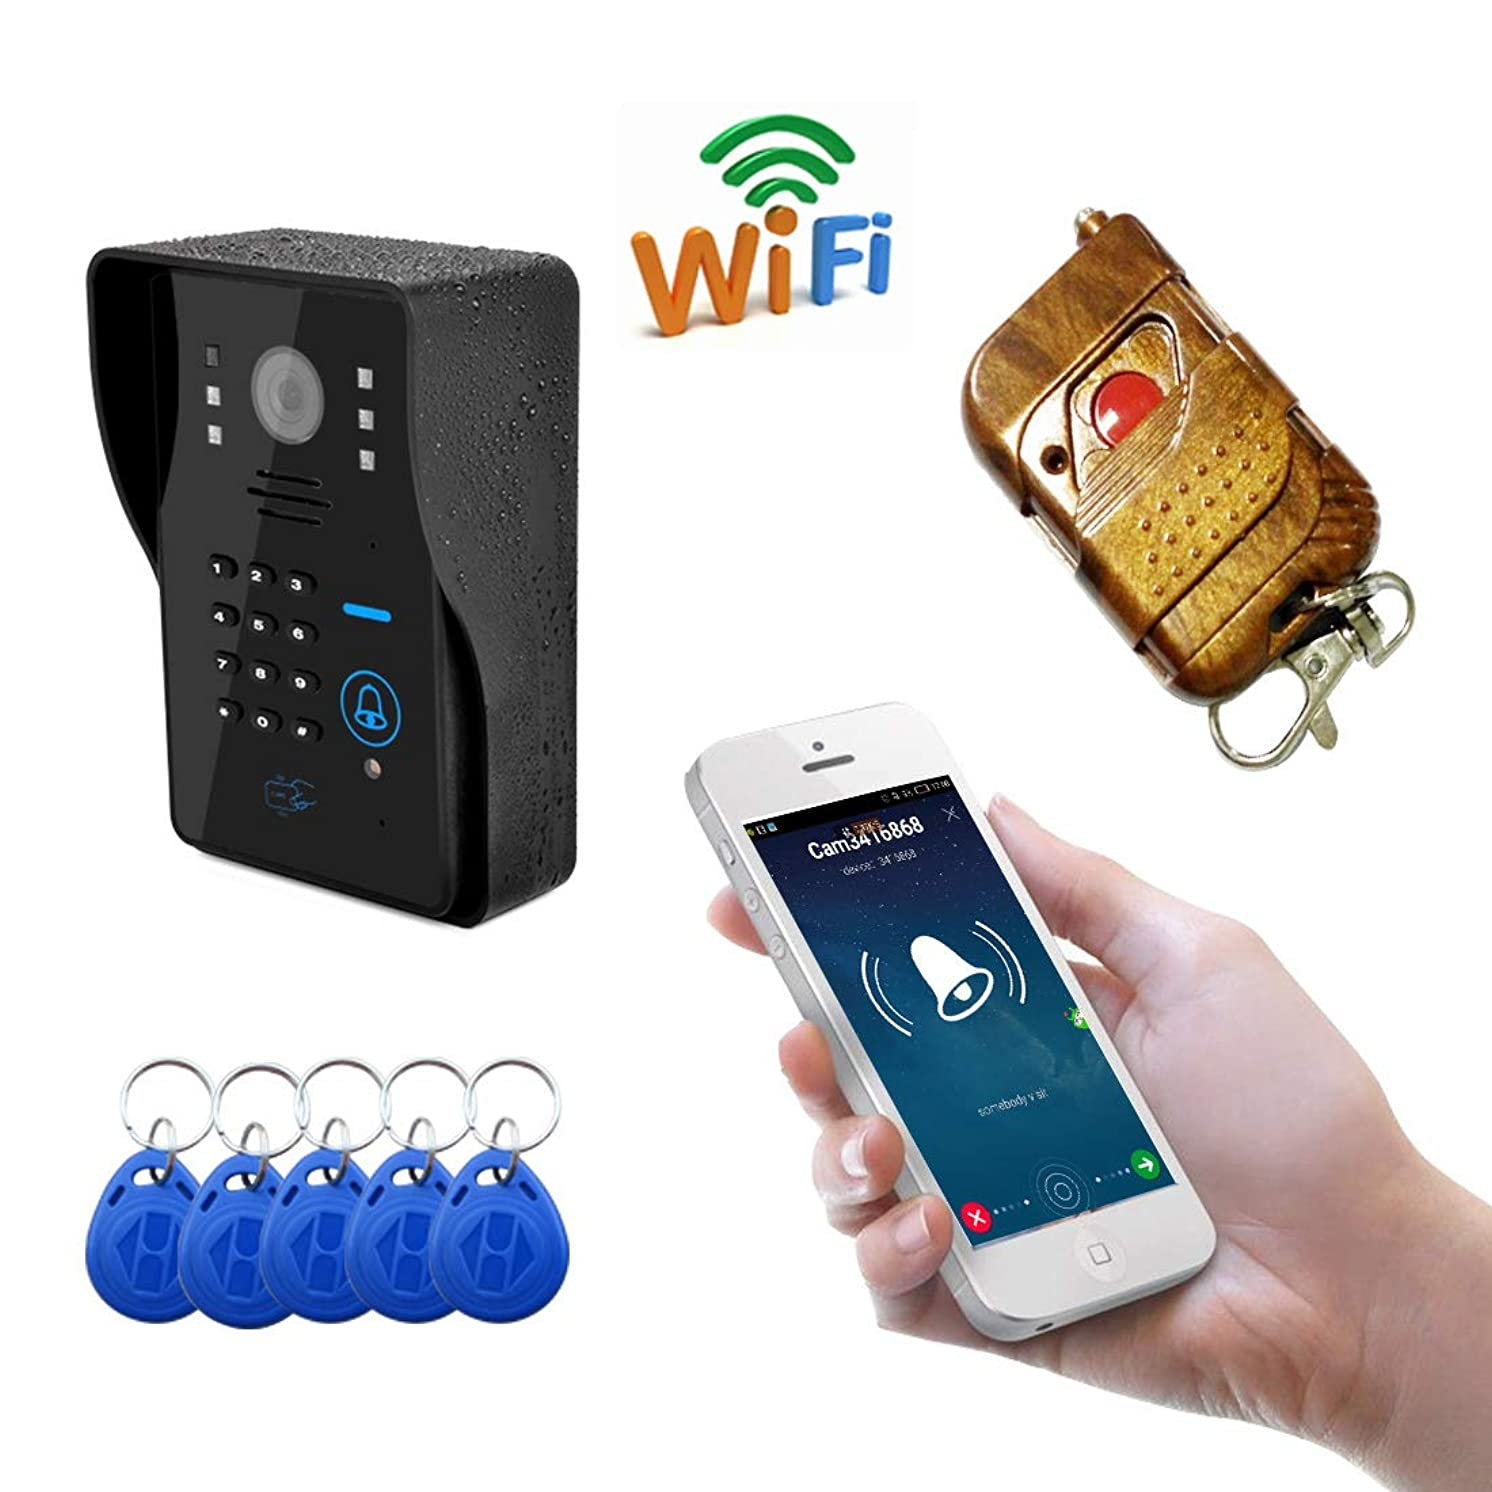 JINPENGPEN WiFi Intelligent Video doorbell Telephone intercom System Video Door Night Vision Function Electronic Control Unlock Home Monitoring